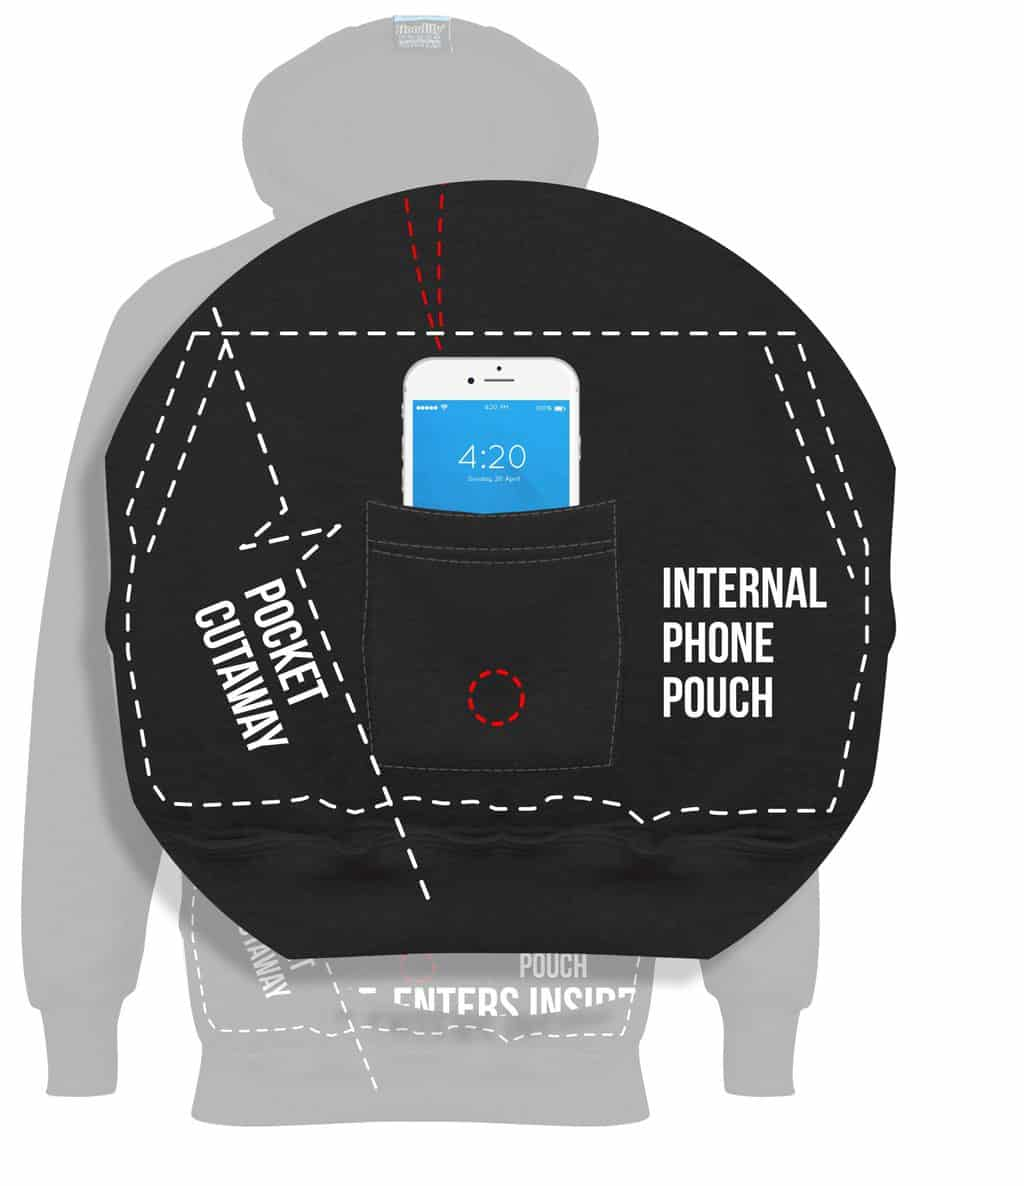 3. HOODIFY.ME - (CALLOUTS BOTTOM) - CUSTOM HOODIES SCREEN PRINTED DESIGNS FEATURING - INTERNAL POCKET - POCKET CUTAWAY - INTERNAL PHONE POUCH